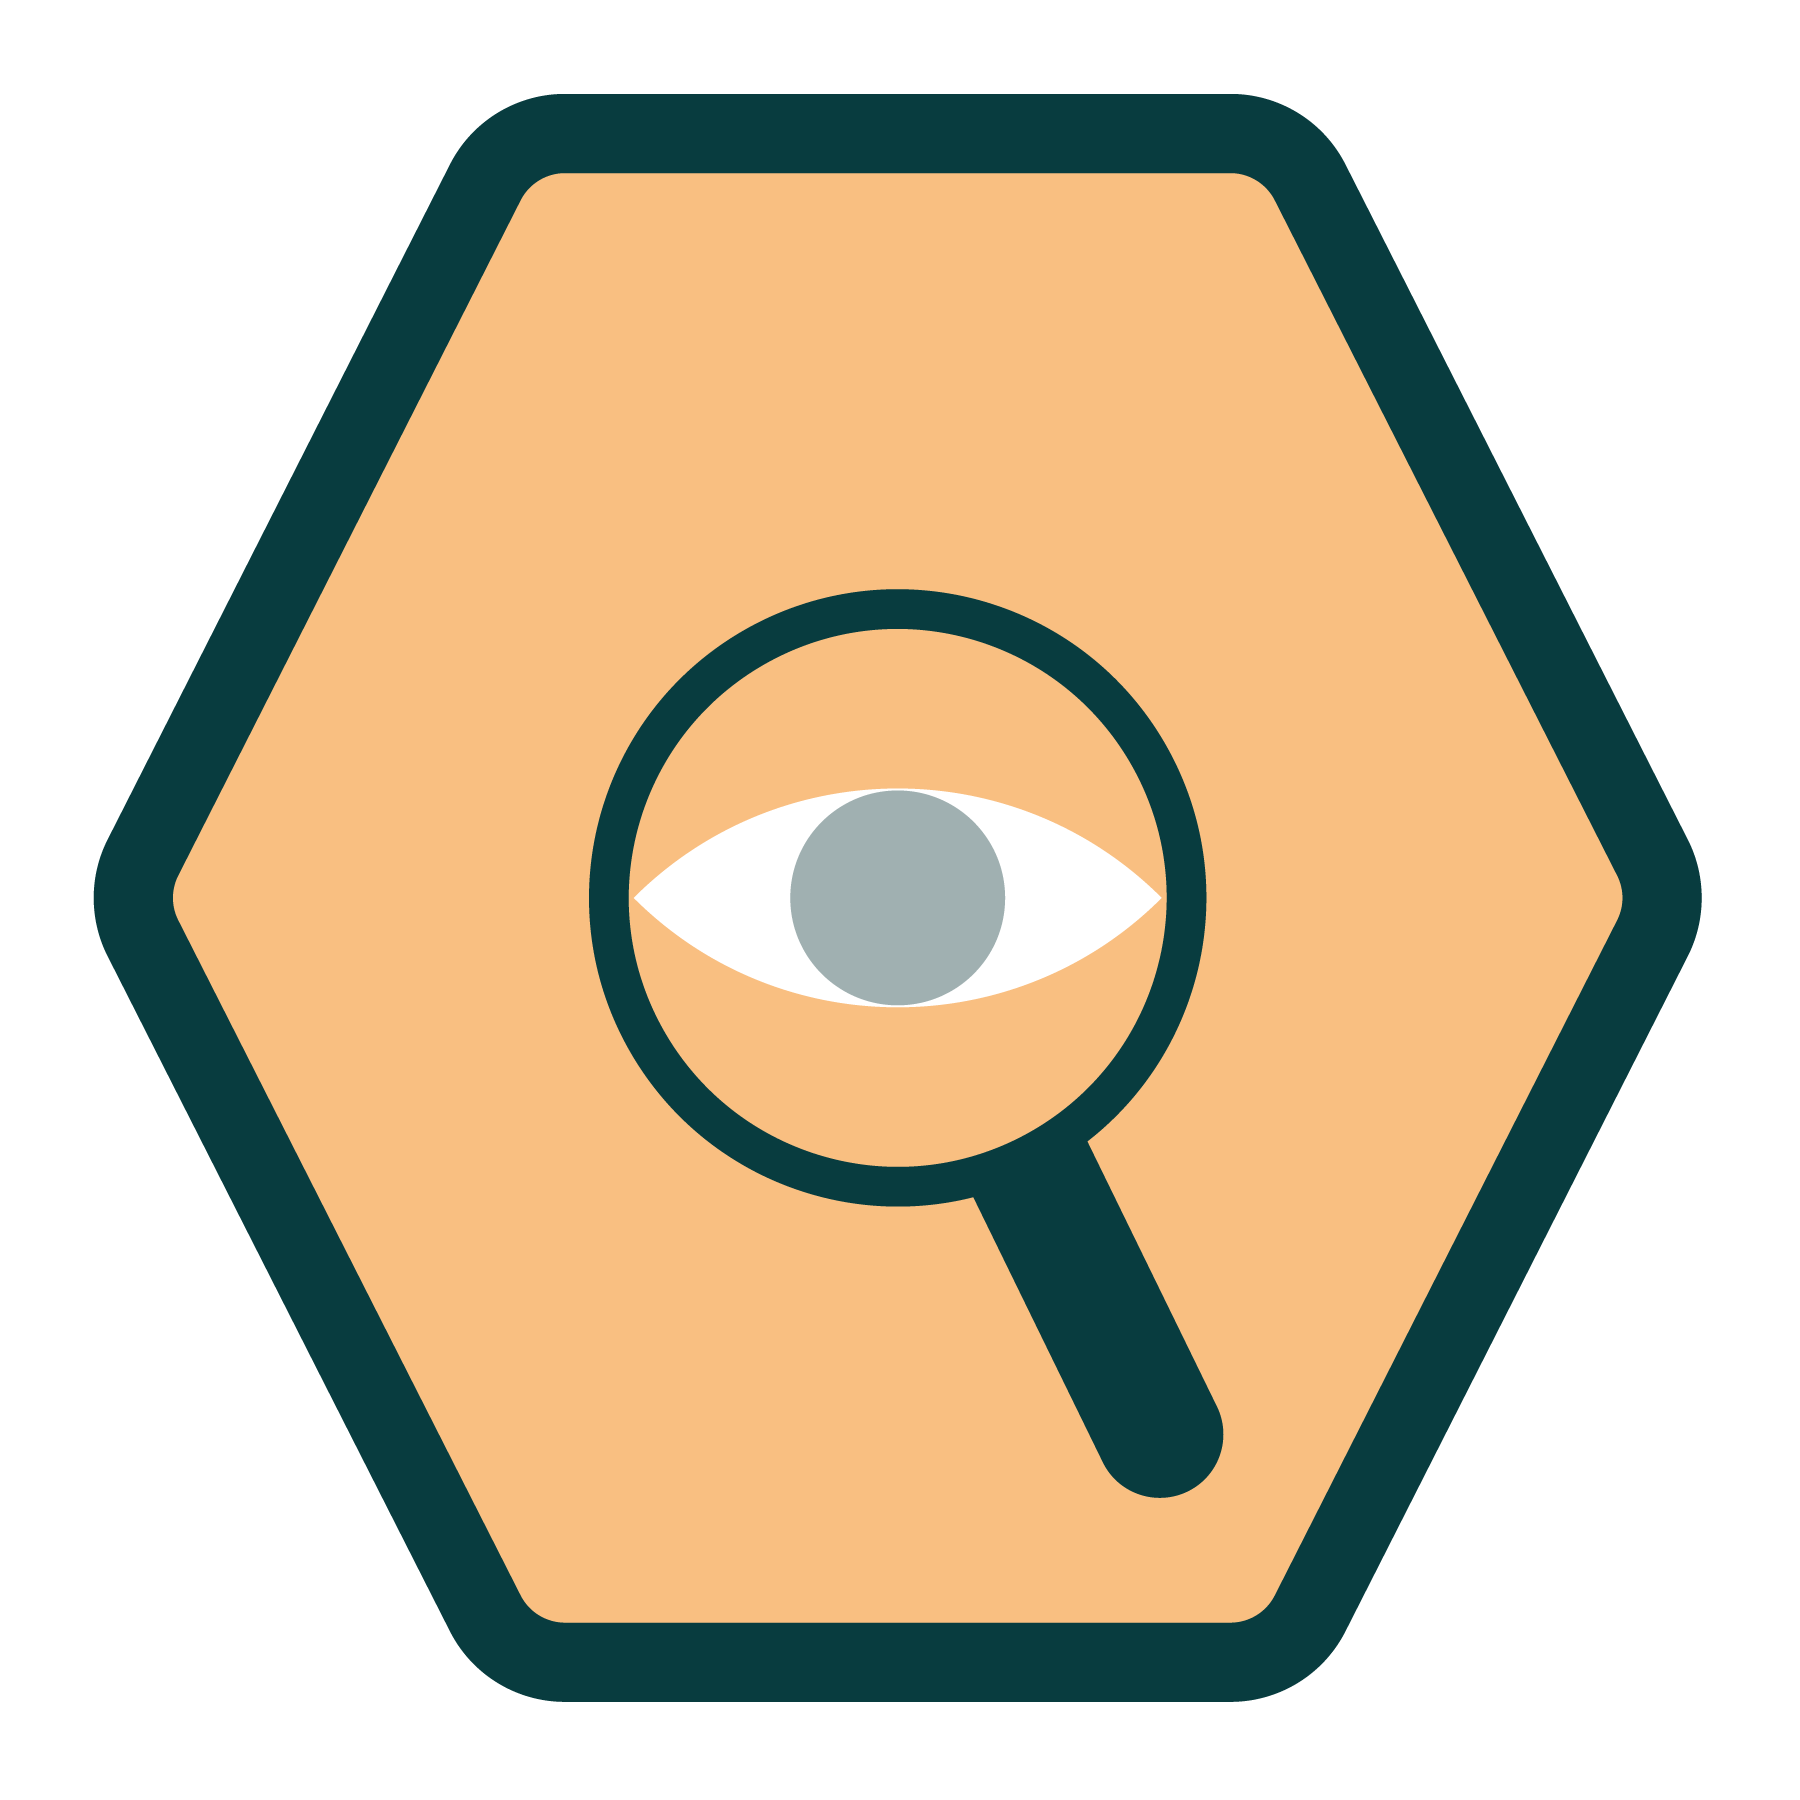 LFF009-MagnifyingGlass-Vector-Badge.png